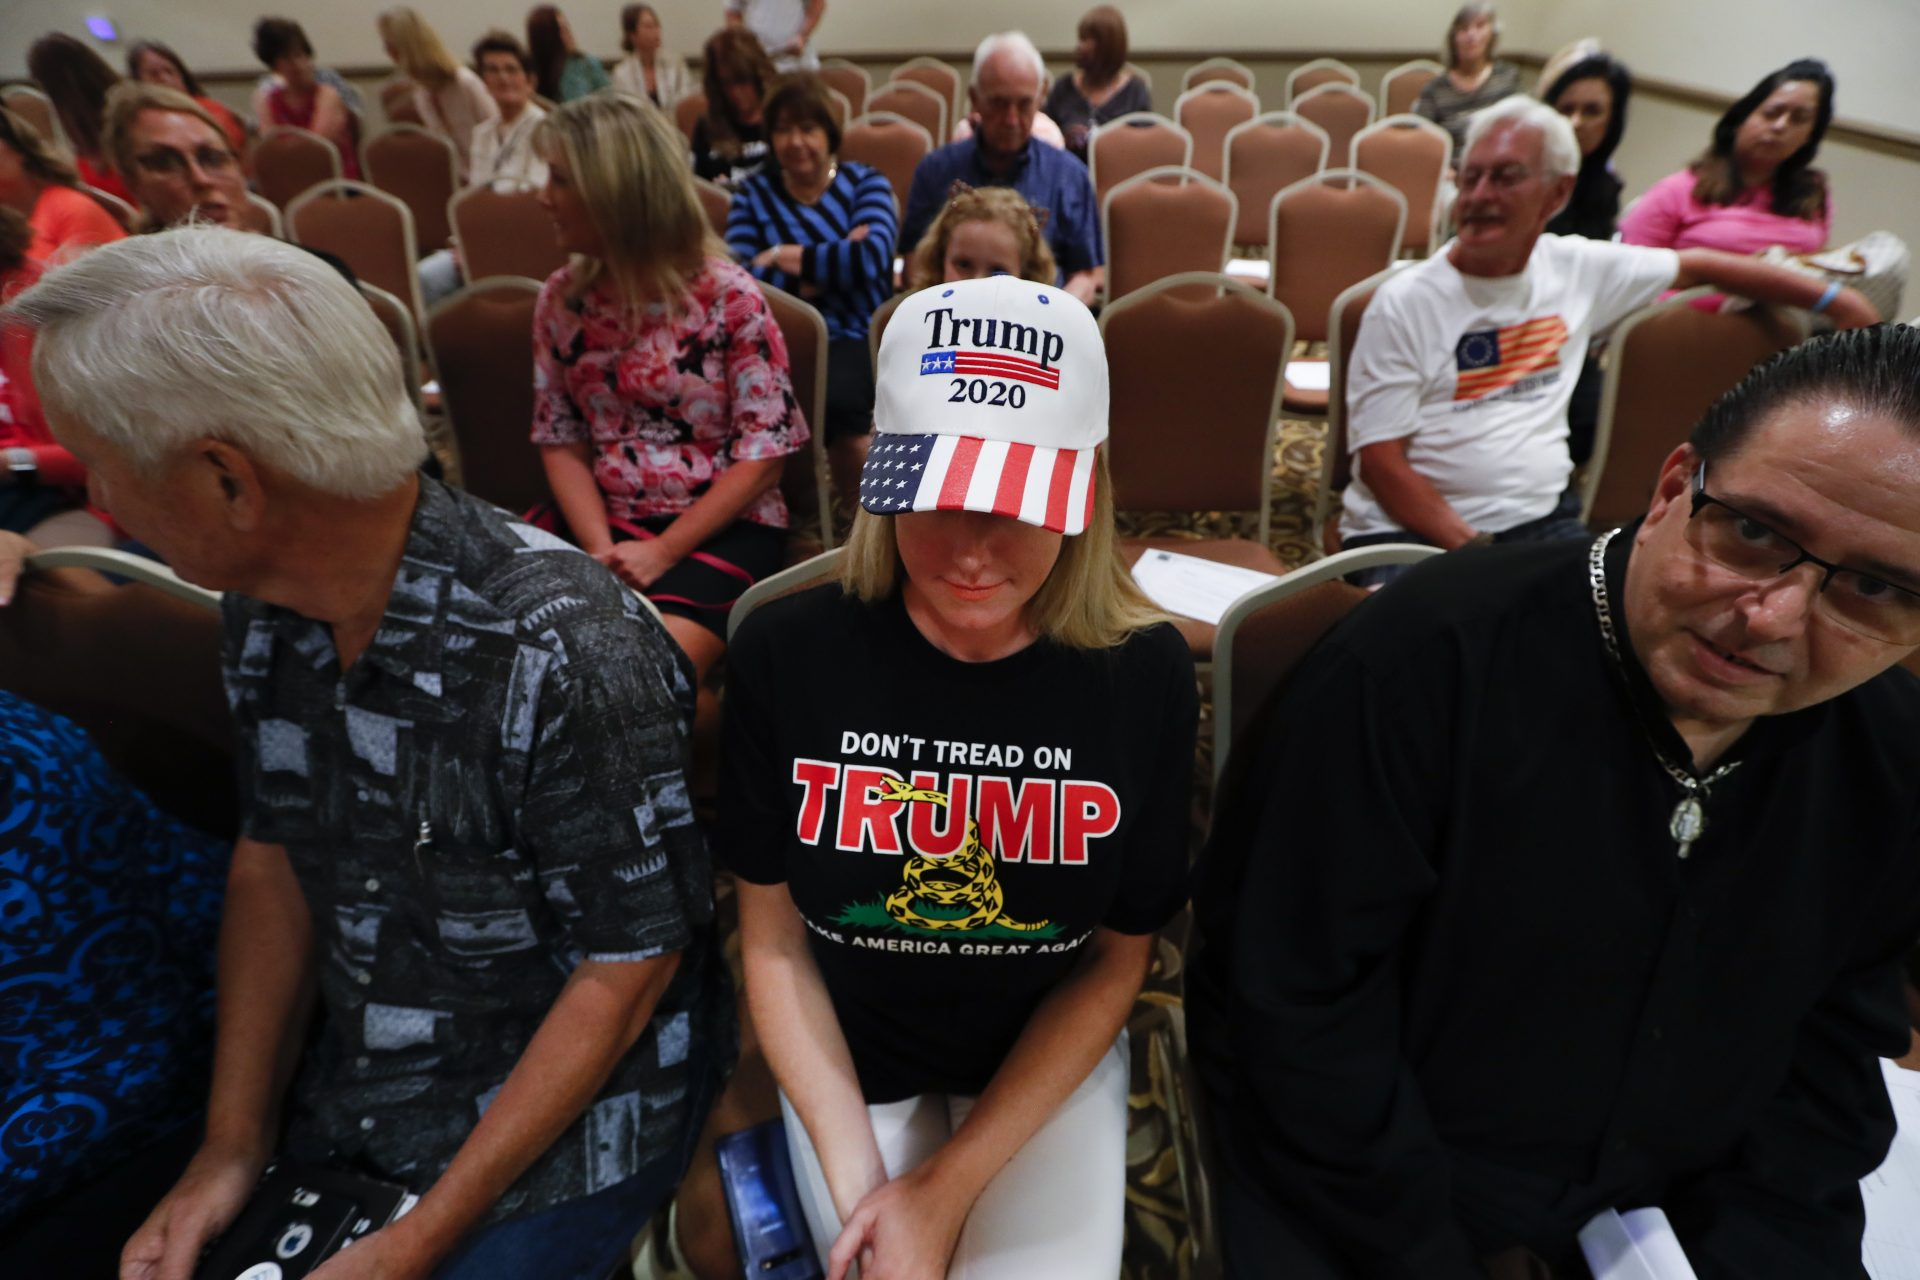 As Vice President Pence comes to central Pa. for Women for Trump event, GOP faces a gender gap